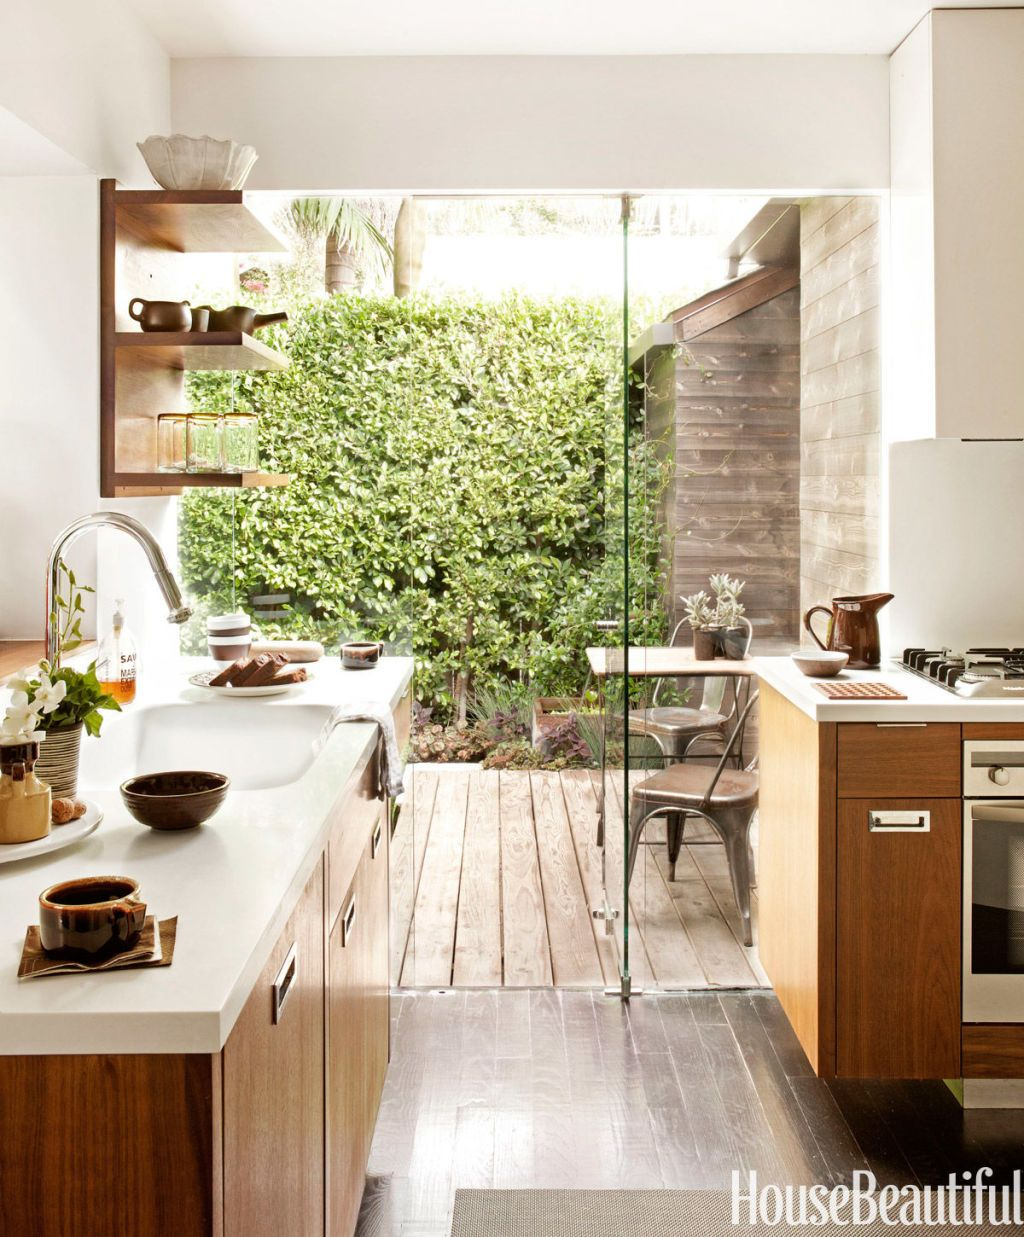 small kitchen ideas that maximize style and efficiency glass